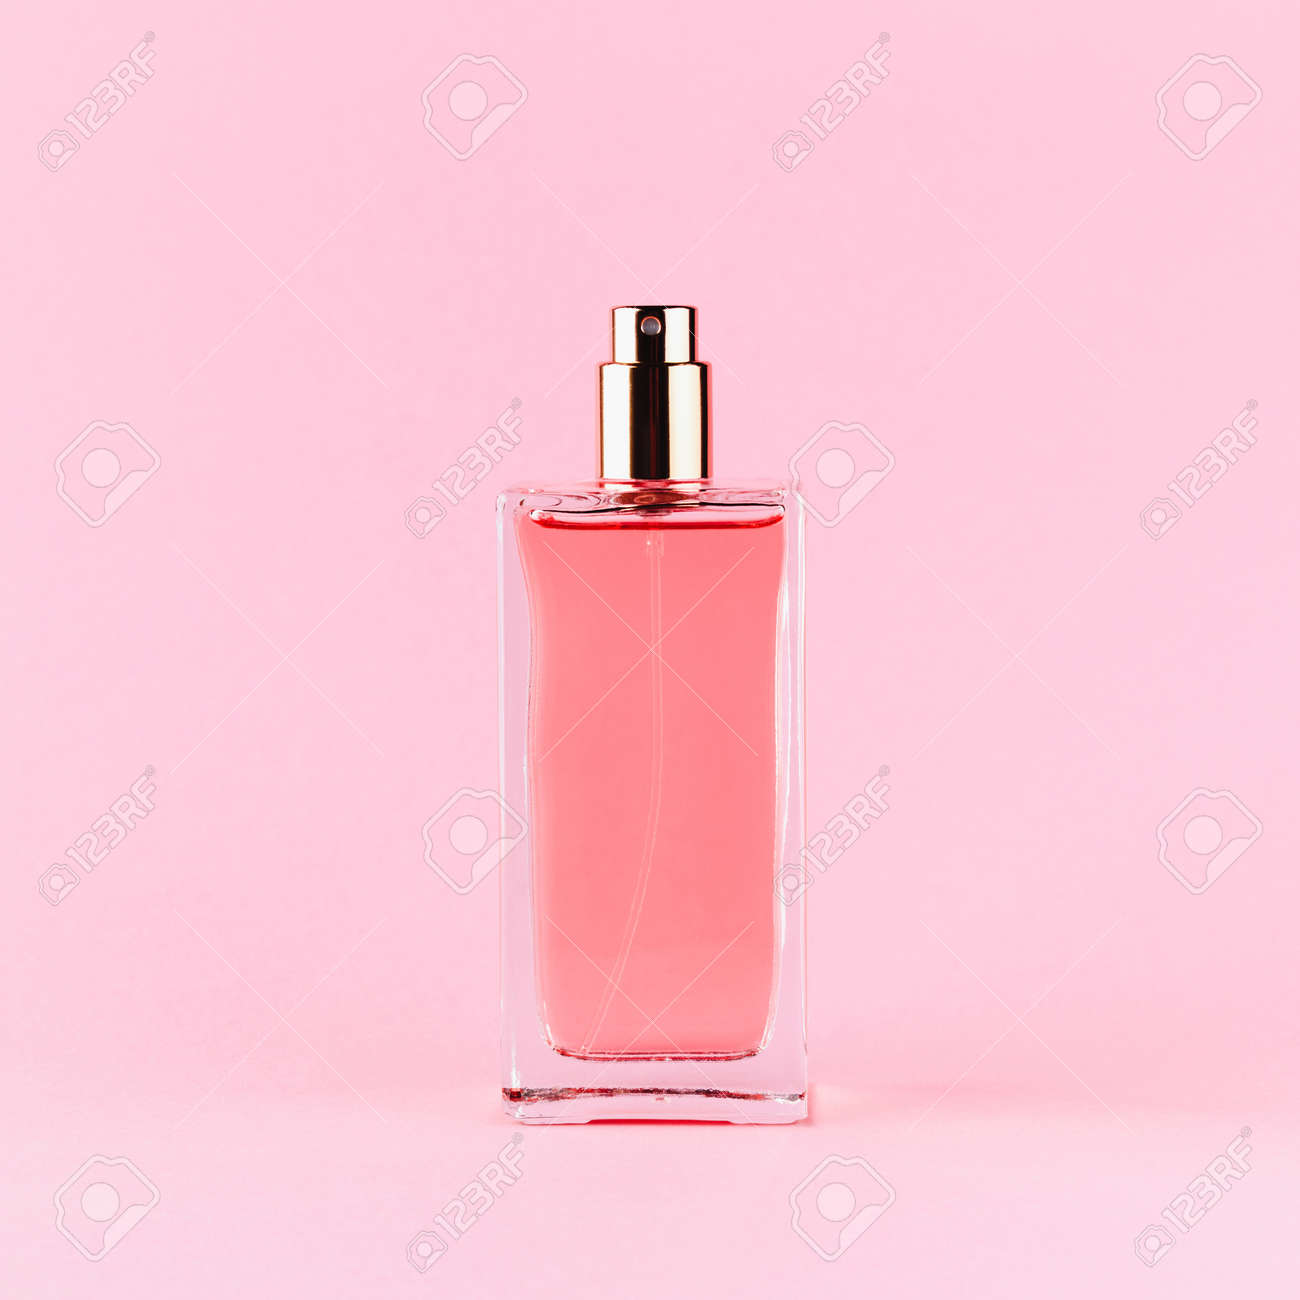 Perfume bottle on a light pink background - 152811669